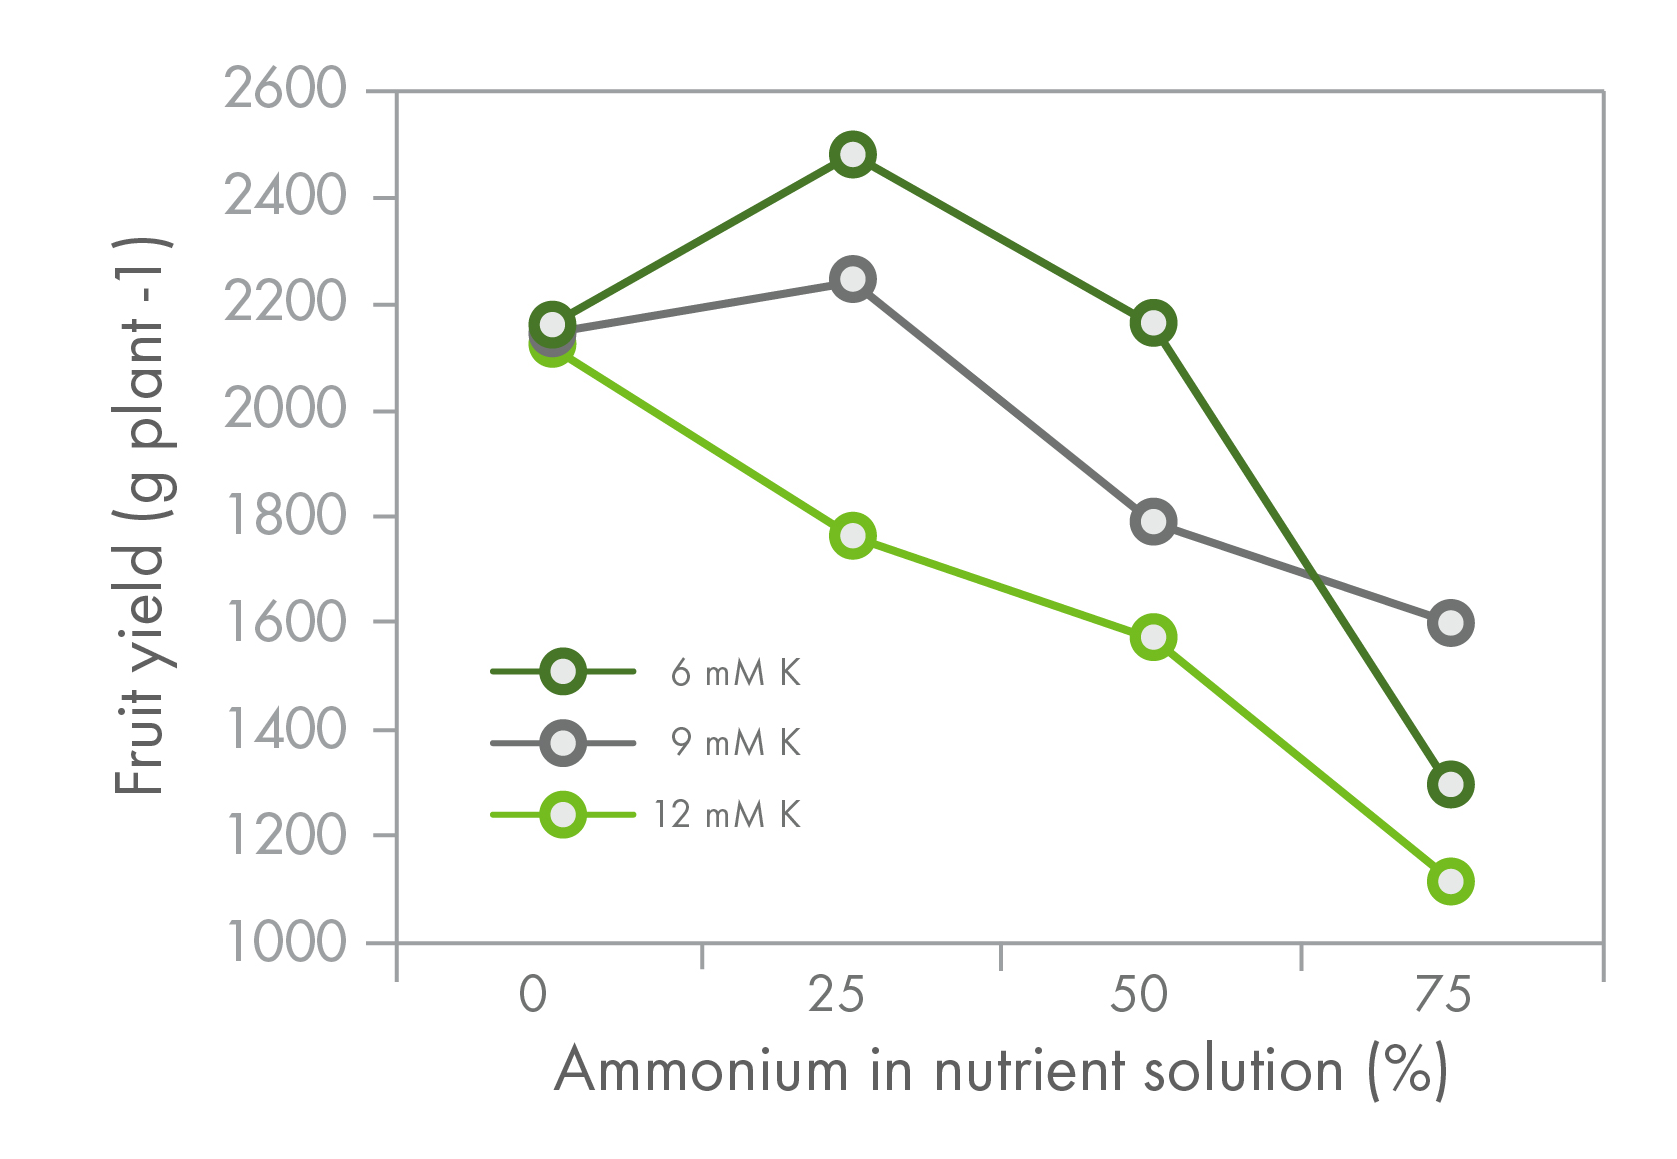 Fruit yield of bell pepper in response to increasing proportion of ammonium (NH<sub>4</sub><sup>+</sup>) and potassium (K) concentration in the nutrient solution. Total nitrogen in the nutrient solution was maintained at 13 mM and completed with nitrogen as nitrate (NO<sub>3</sub><sup>-</sup>). Each point represents the average of four replications with three plants each.